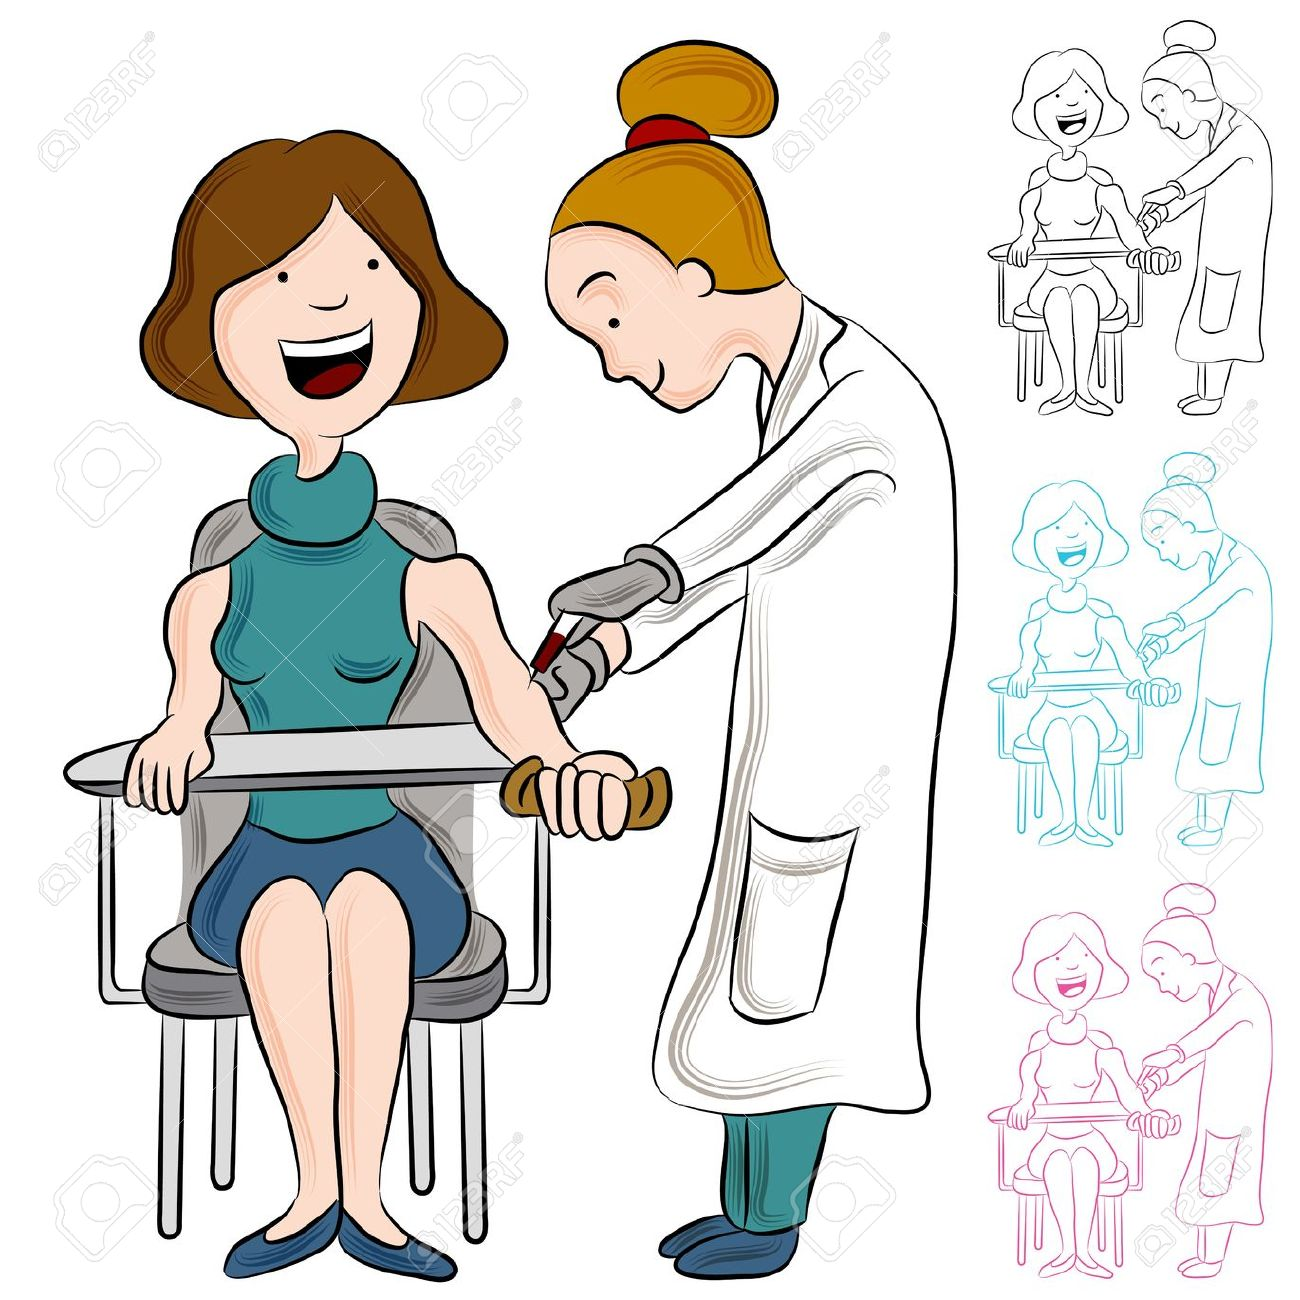 An Image Of A Woman Taking A Blood Test. Royalty Free Cliparts.